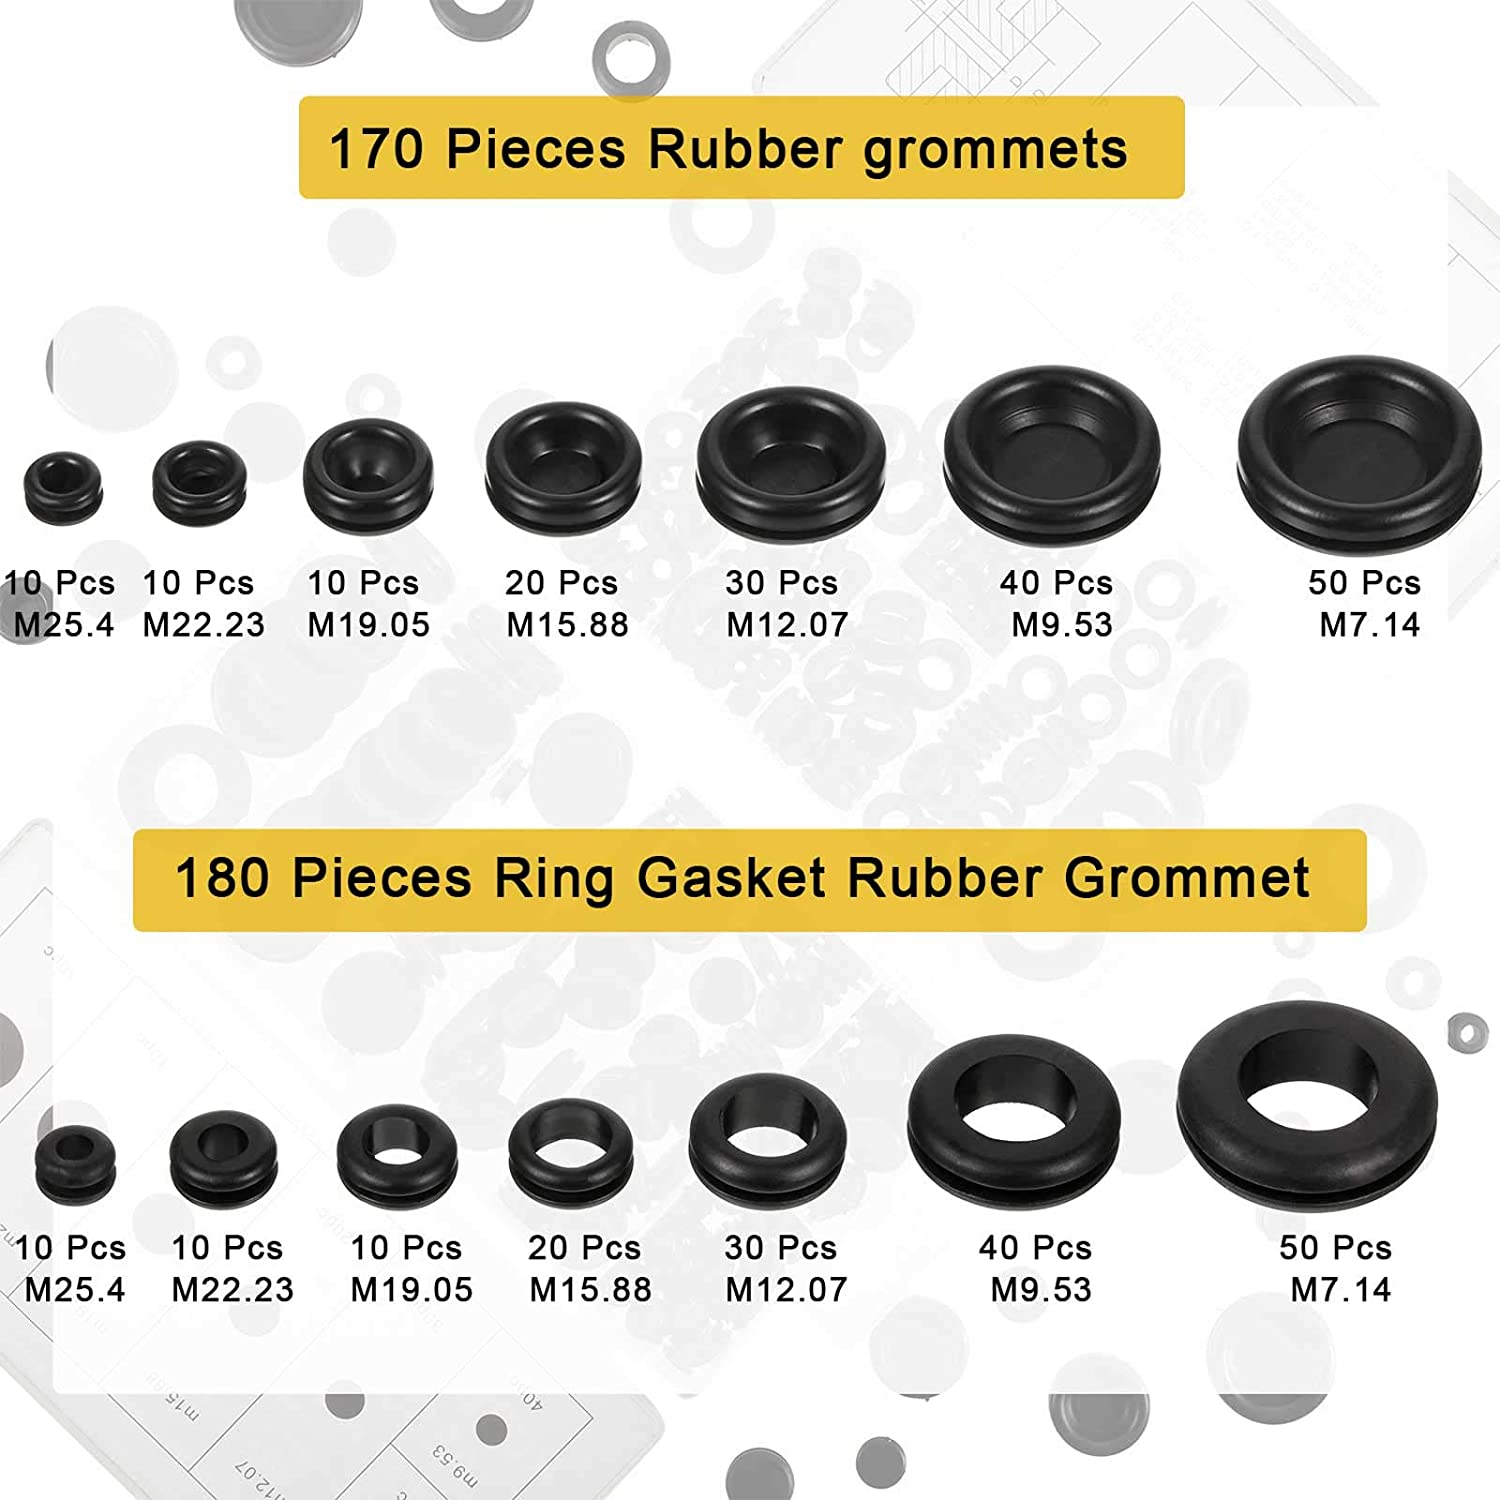 PC Hardware Piano 350 Pieces Rubber Grommet Assortment Kit Firewall Hole Plug Electrical Wire Gasket Rubber Ring Gasket with Plastic Box 15 Sizes for Automotive 2 Boxes Plumbing